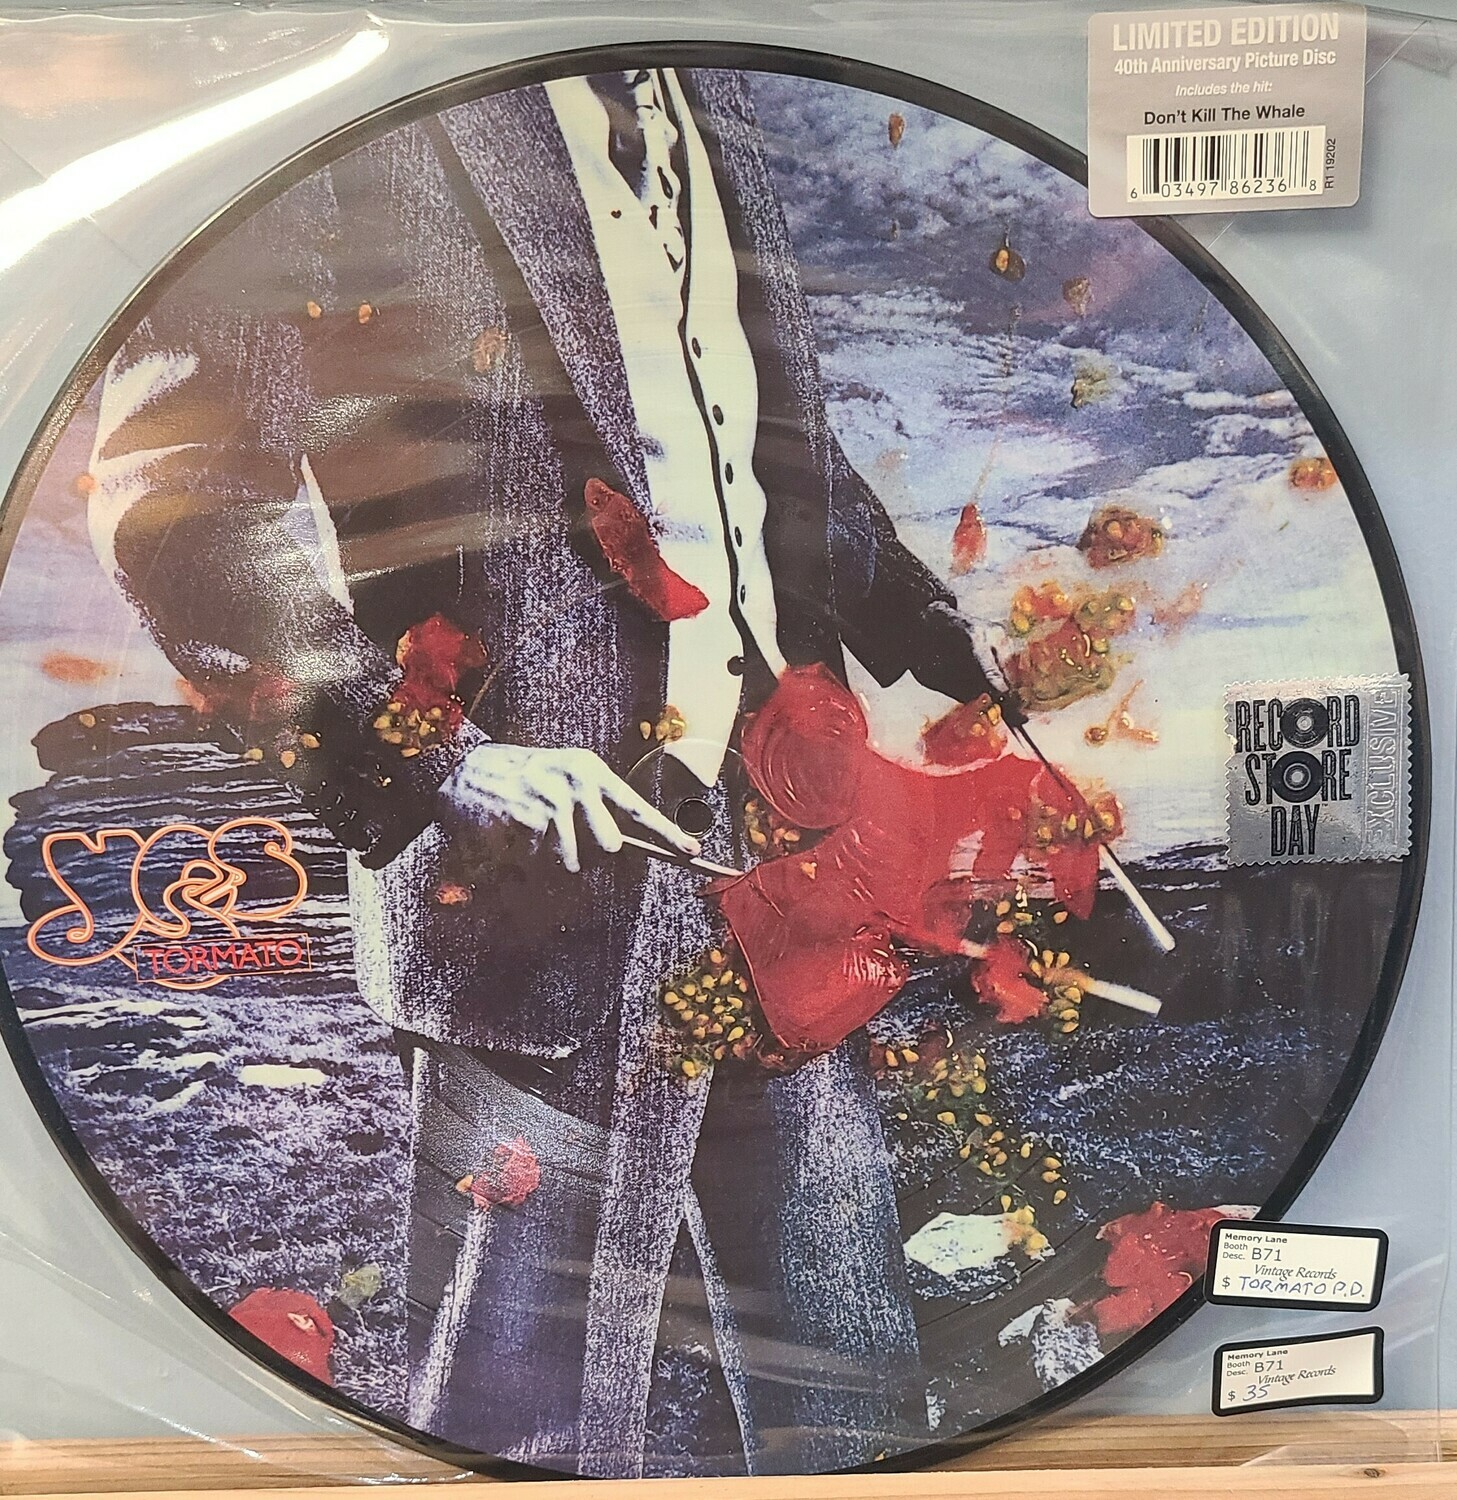 Yes - Don't kill the whale - LP -